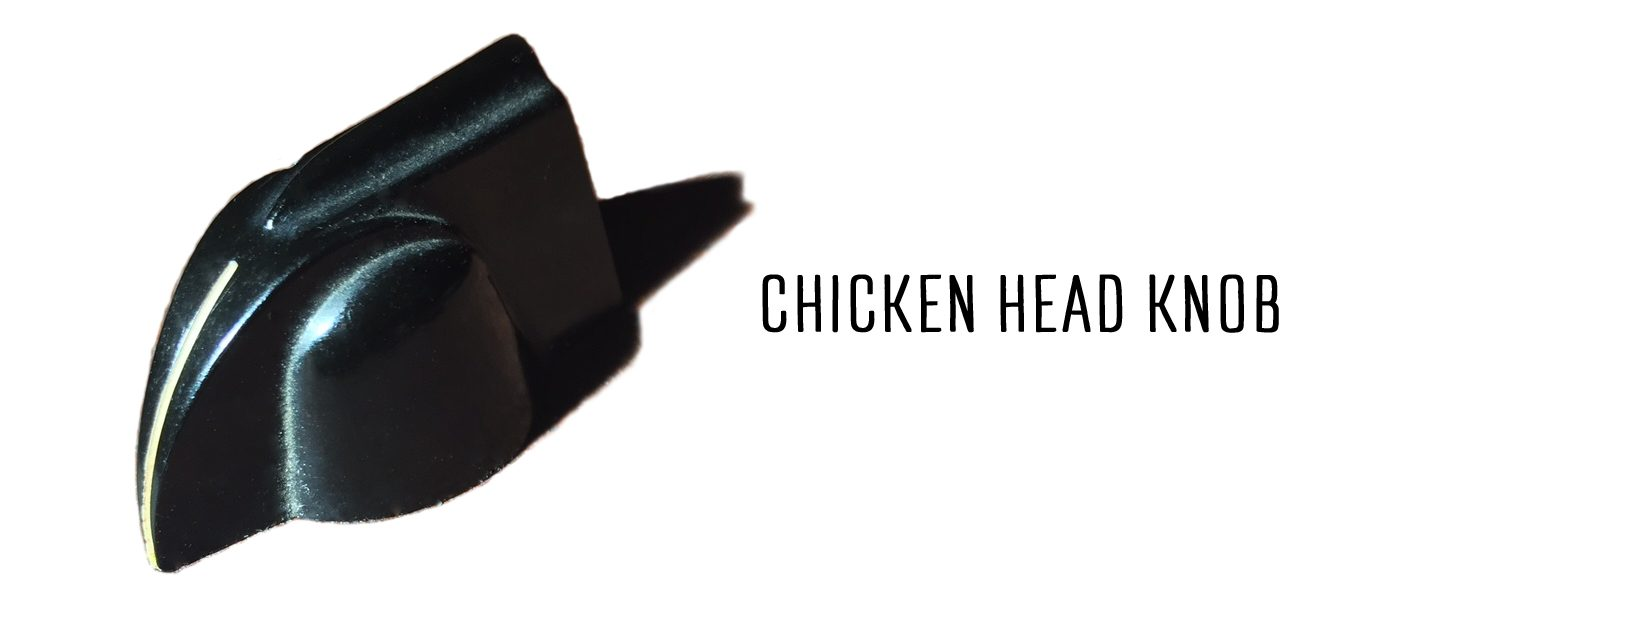 Chicken Head Knob_Web Cover